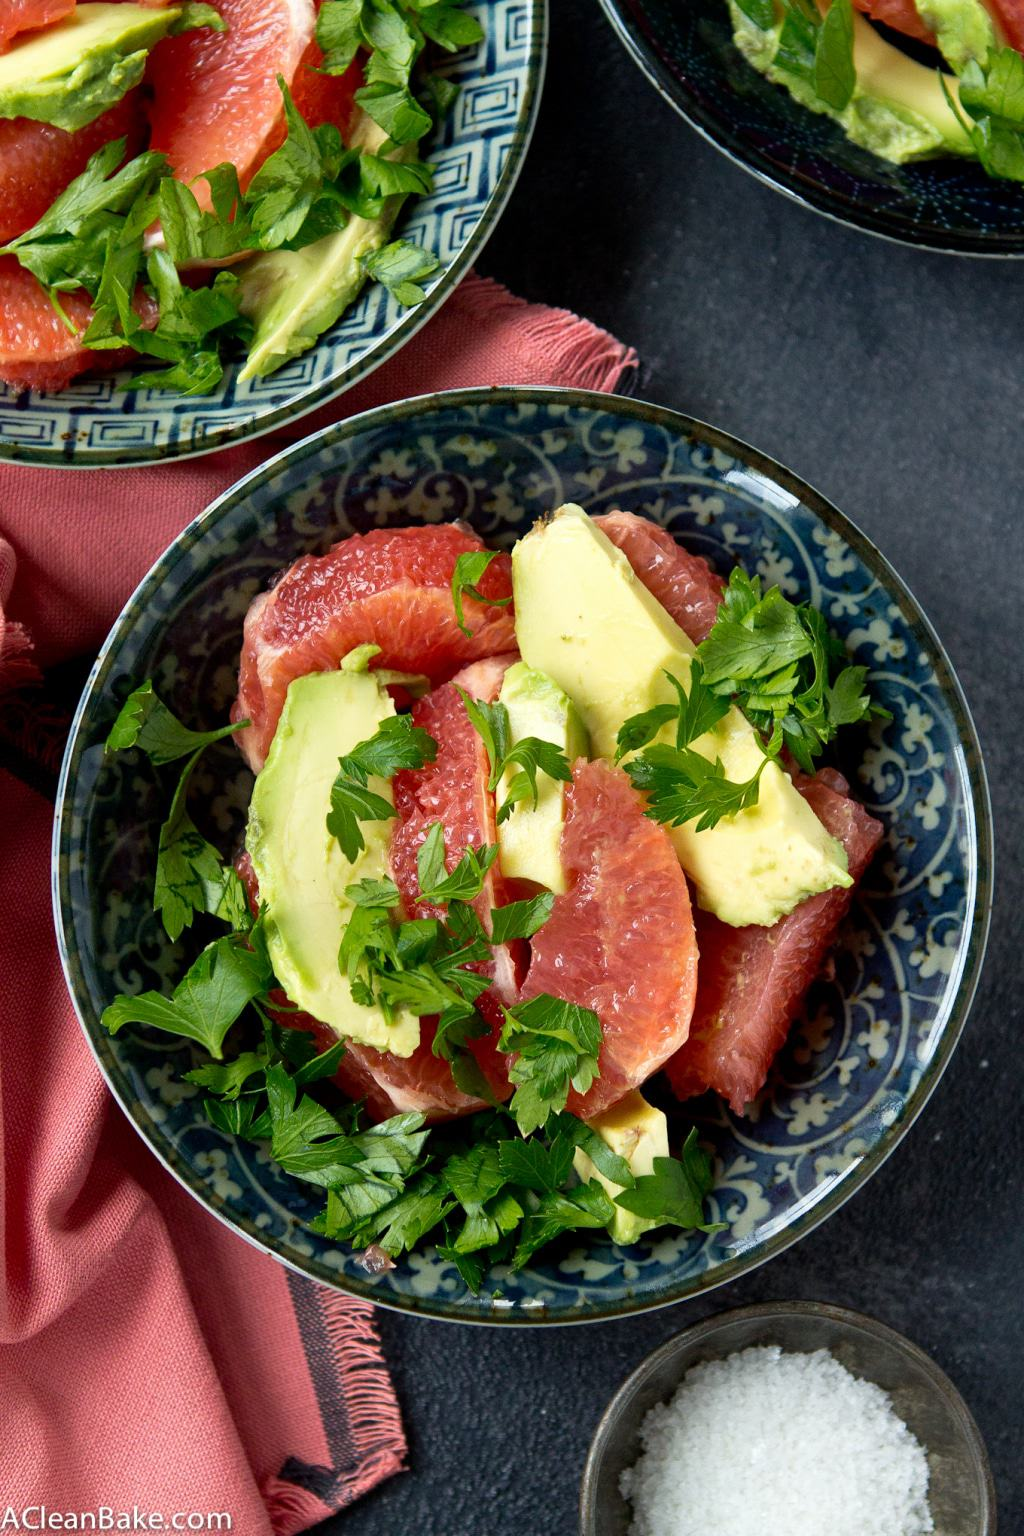 Simple Grapefruit & Avocado Salad (Gluten Free, Paleo, and Whole30)